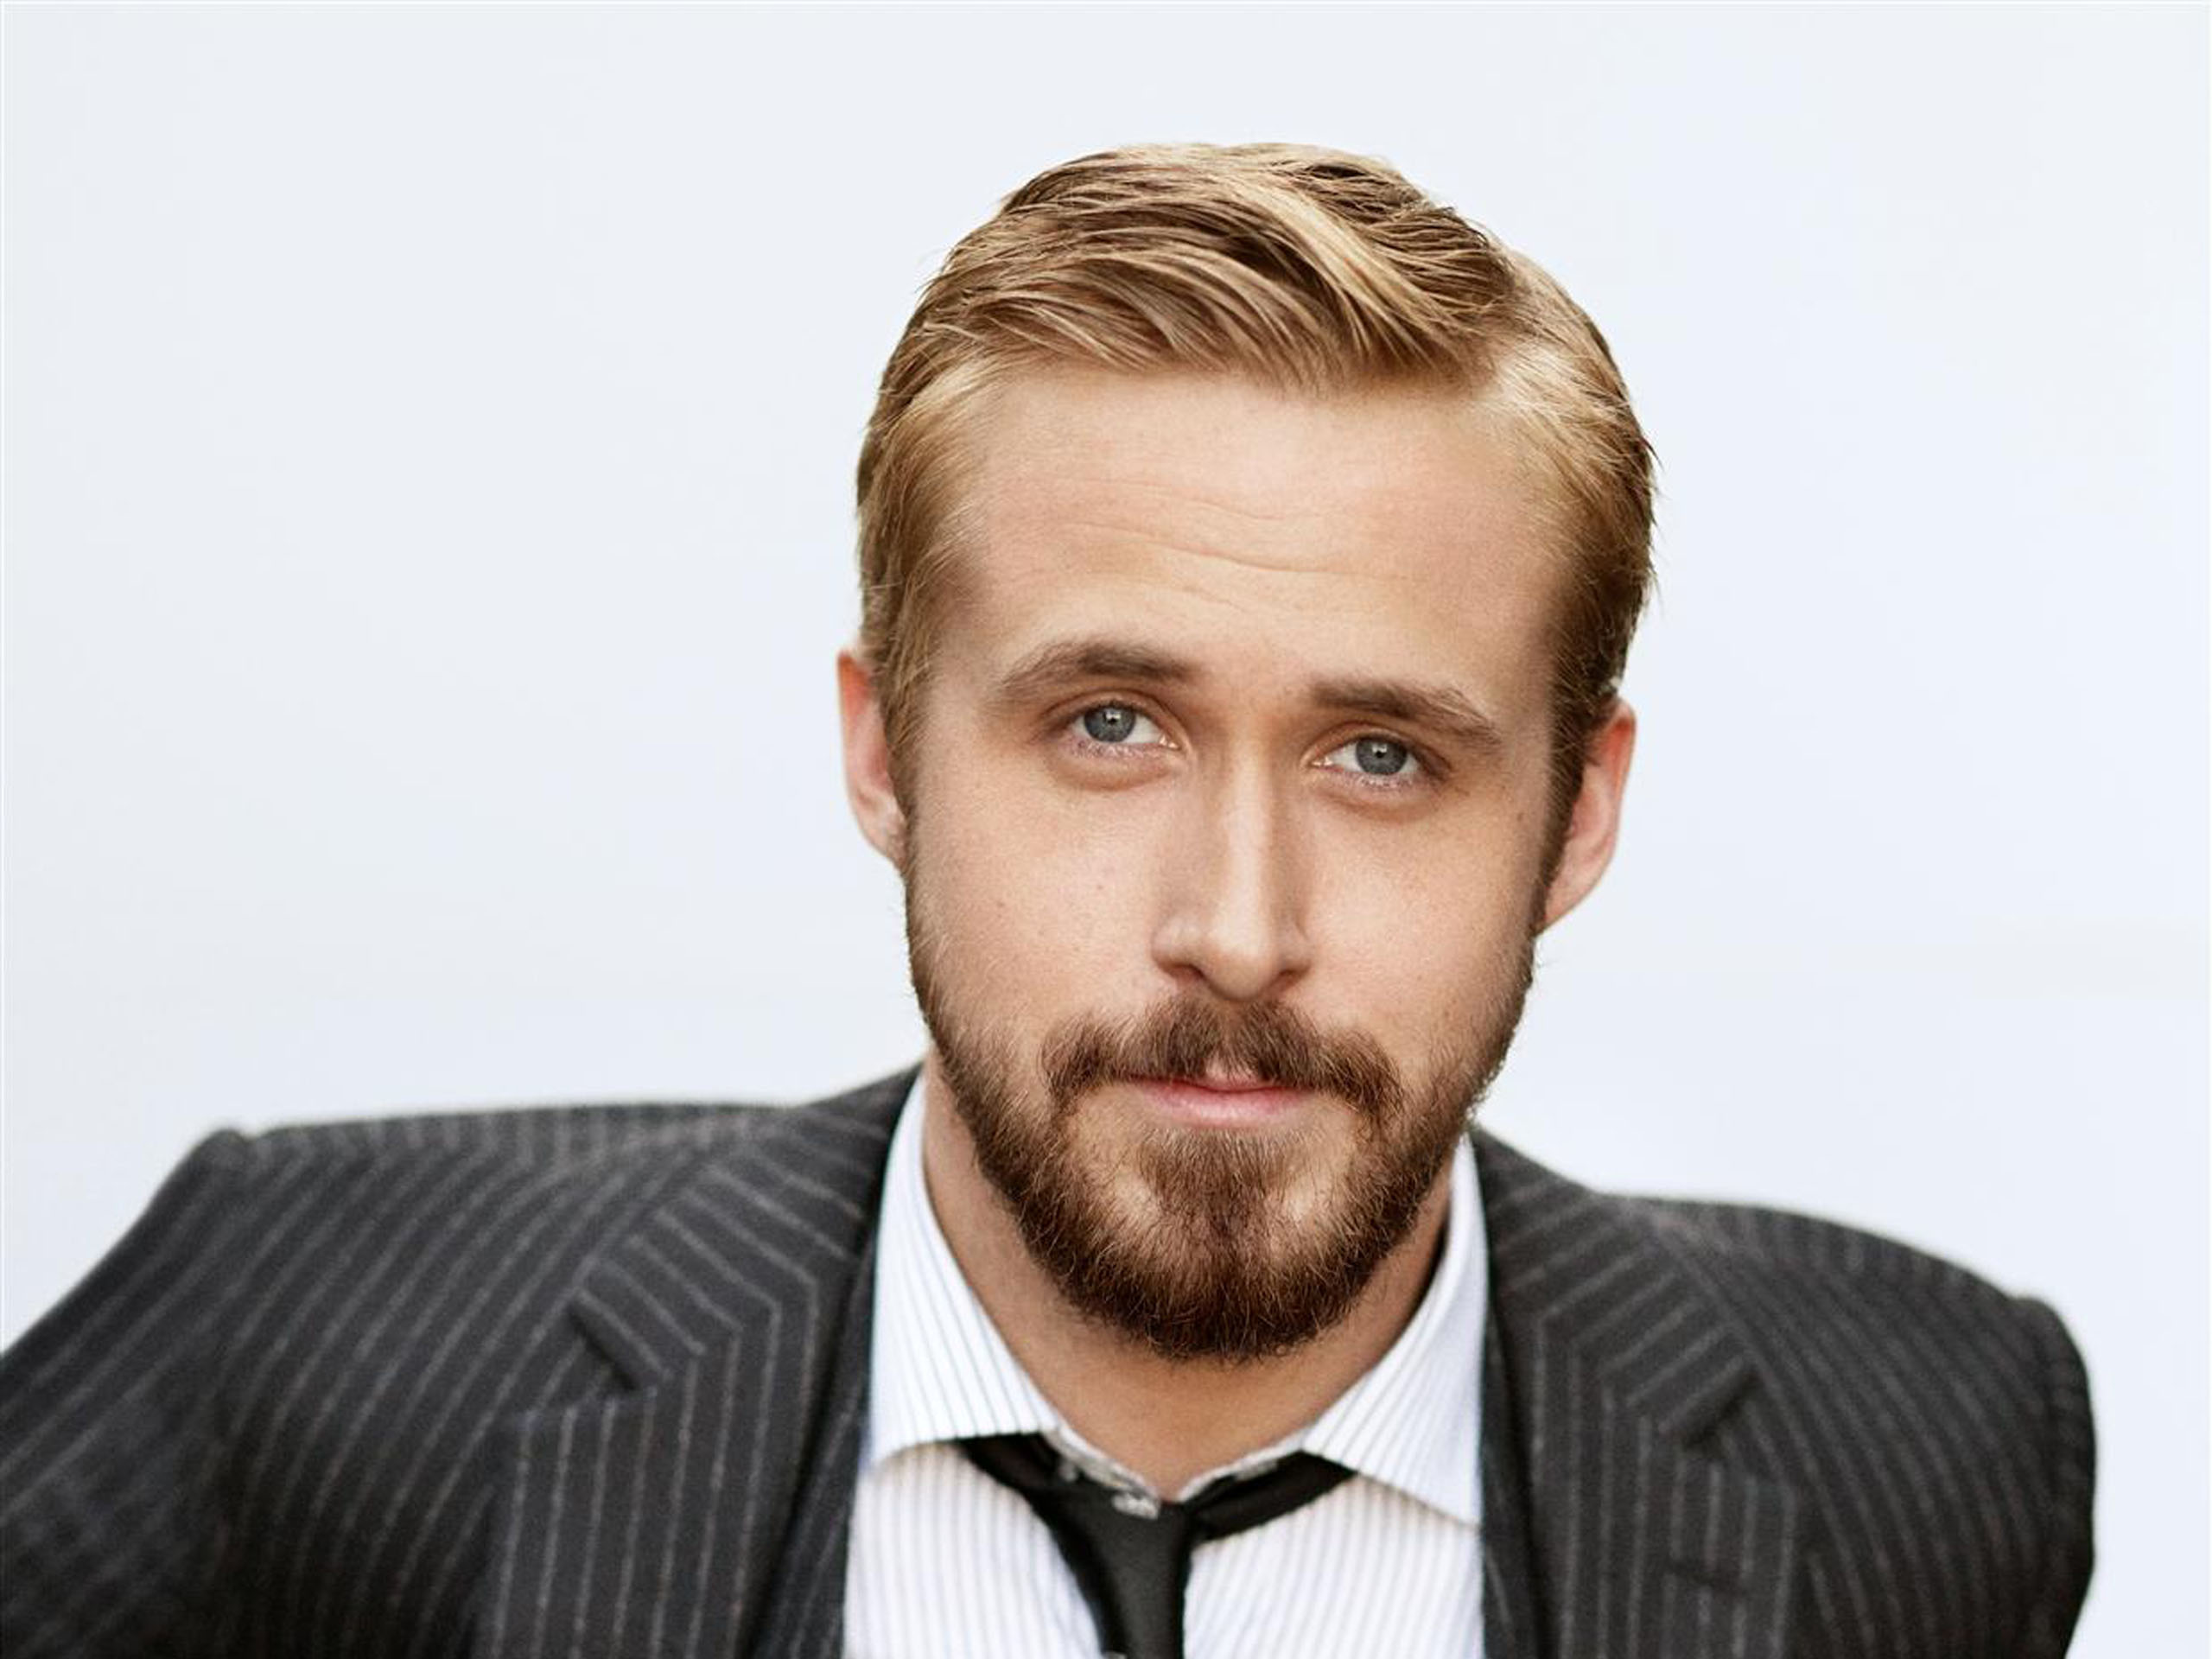 Overview of the career and roles of actor Ryan Gosling